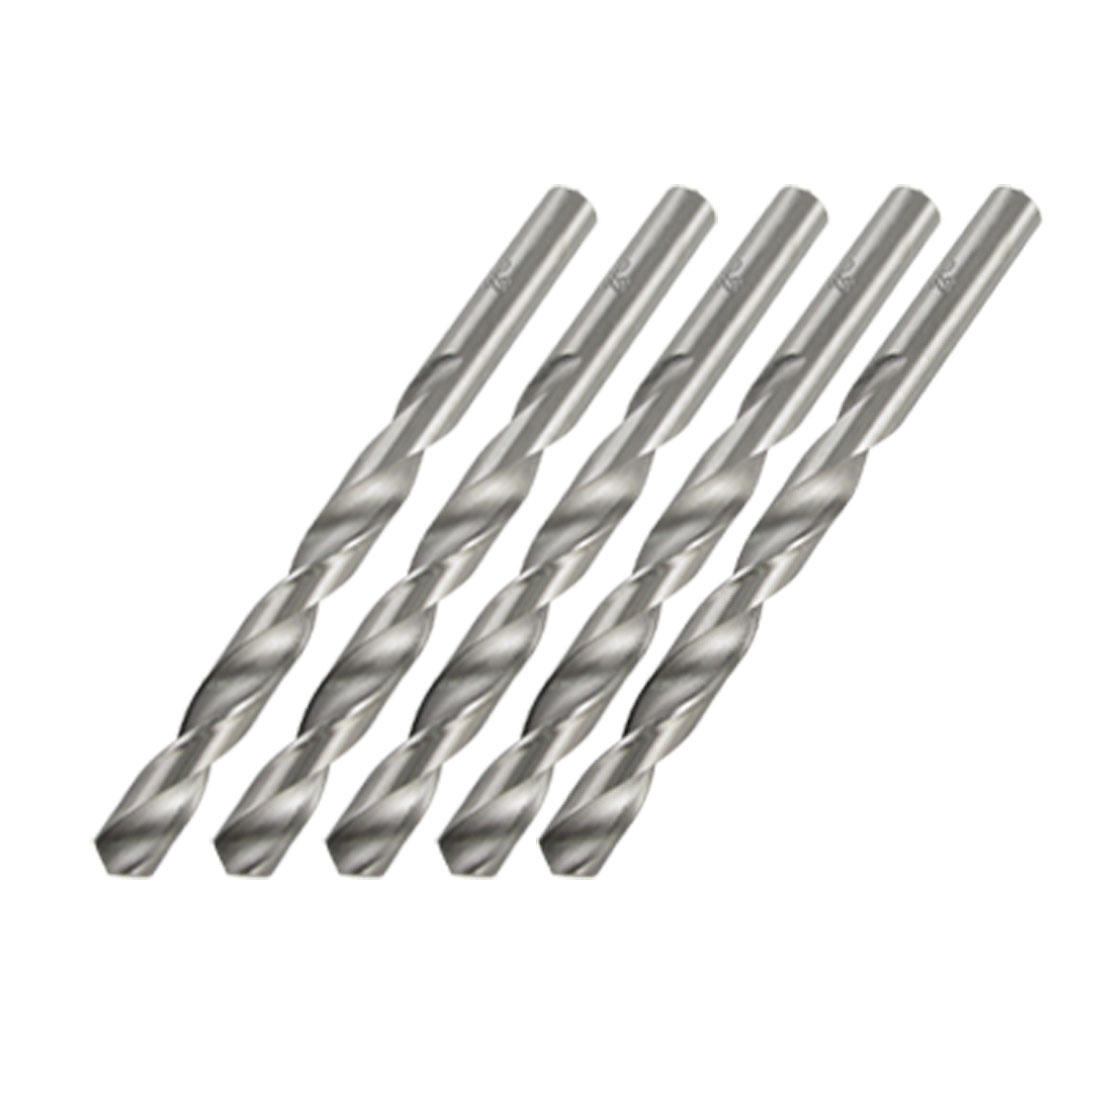 "4.8"" Length 10mm Diameter HSS Straight Shank Twist Drill Bit 5Pcs"